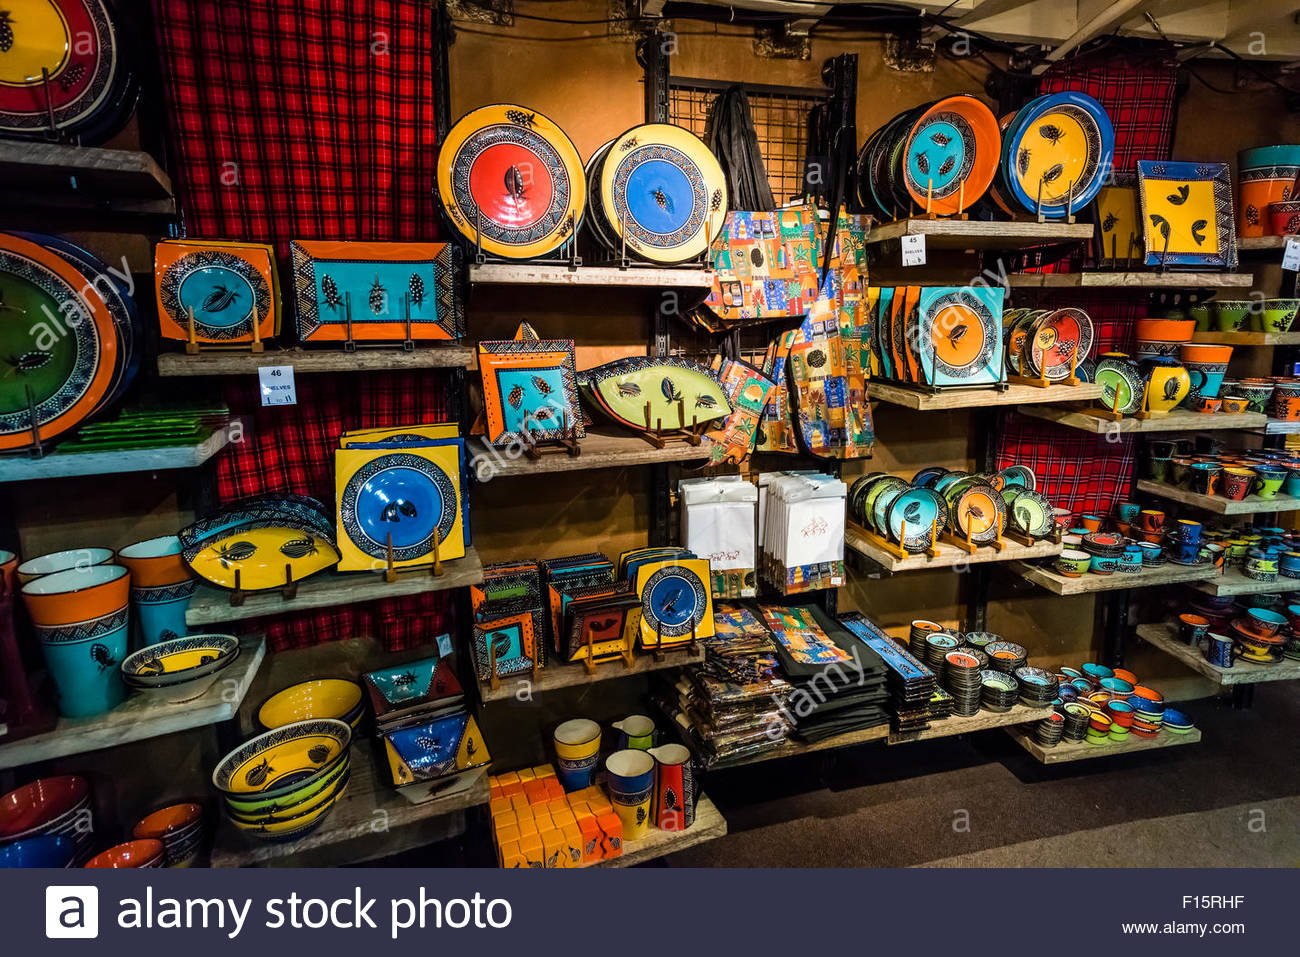 Out Of Africa Shop African Souvenirs And Handicrafts O R Tambo